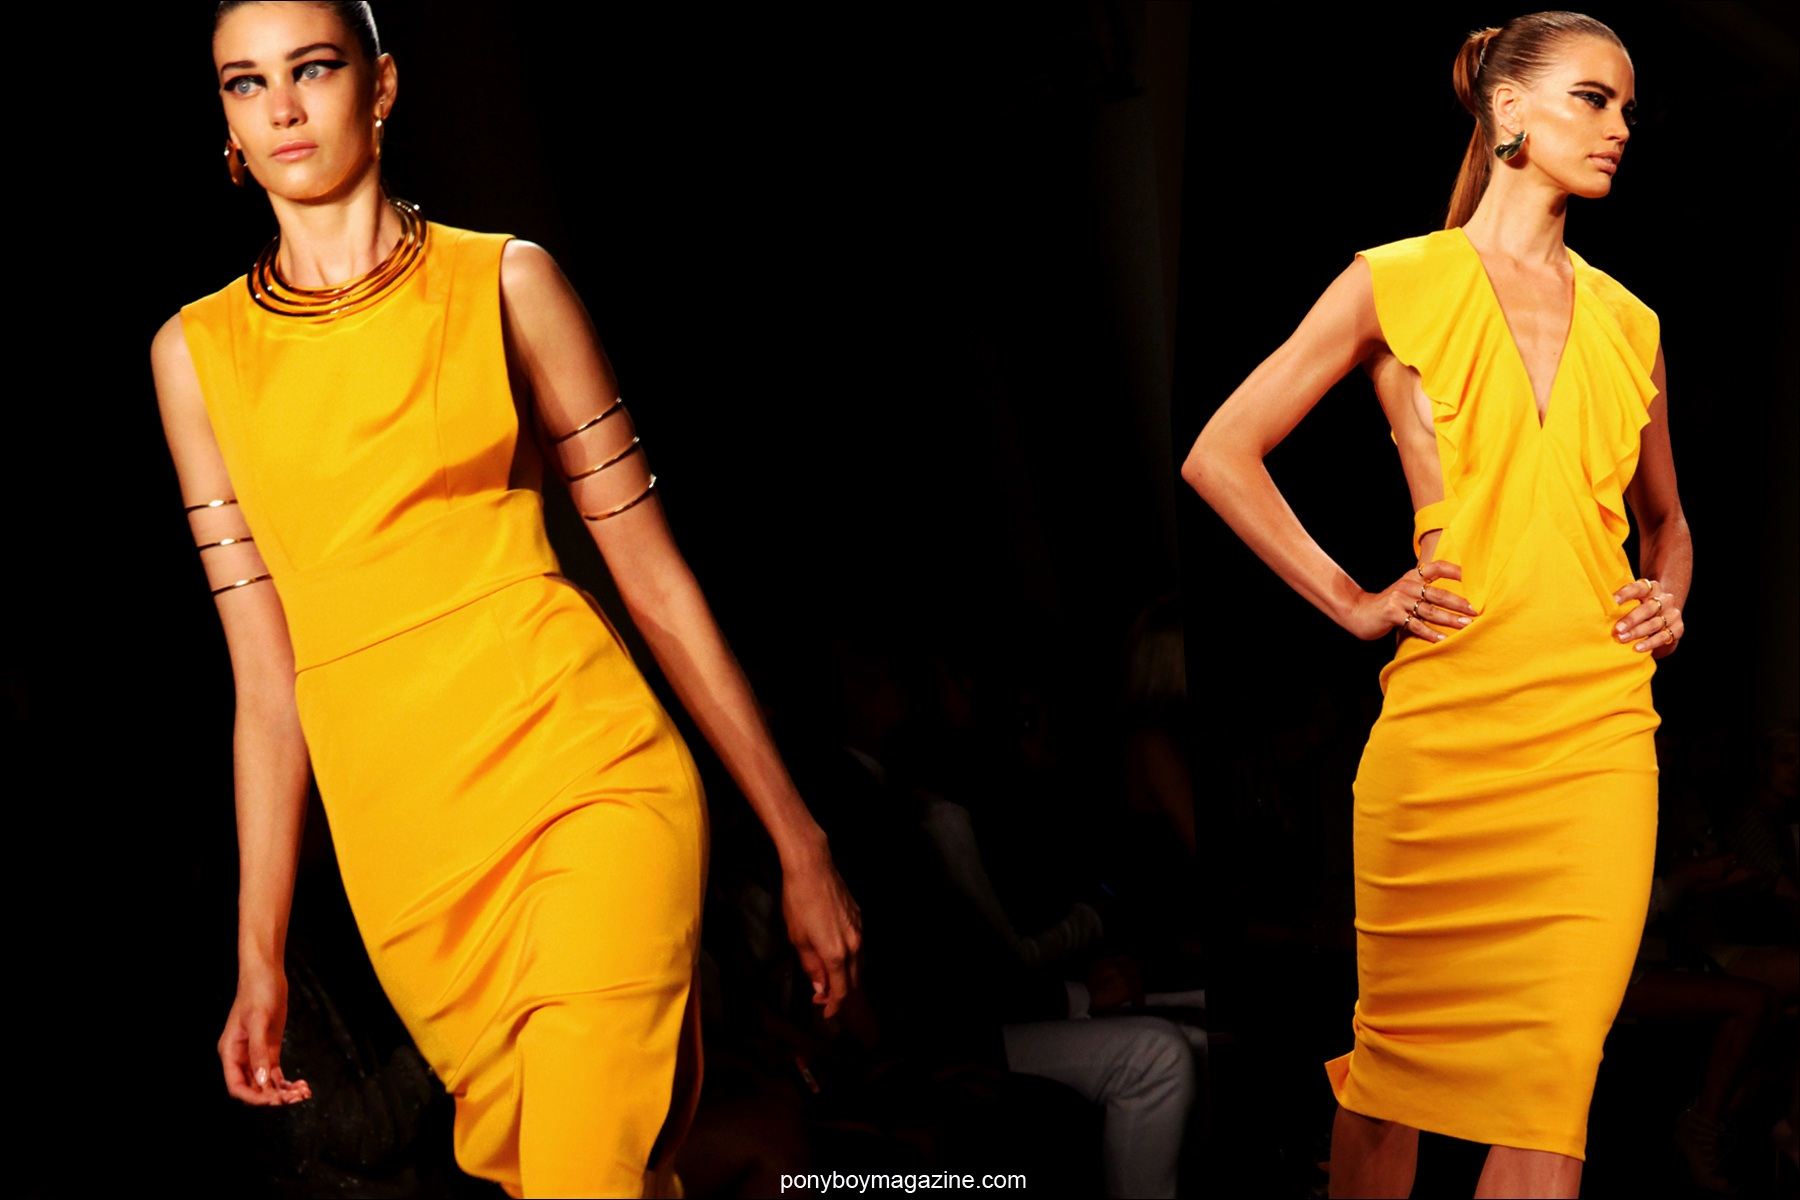 Models on the runway for Cushnie et Ochs S/S 2015. Photographed for Ponyboy Magazine by Alexander Thompson.